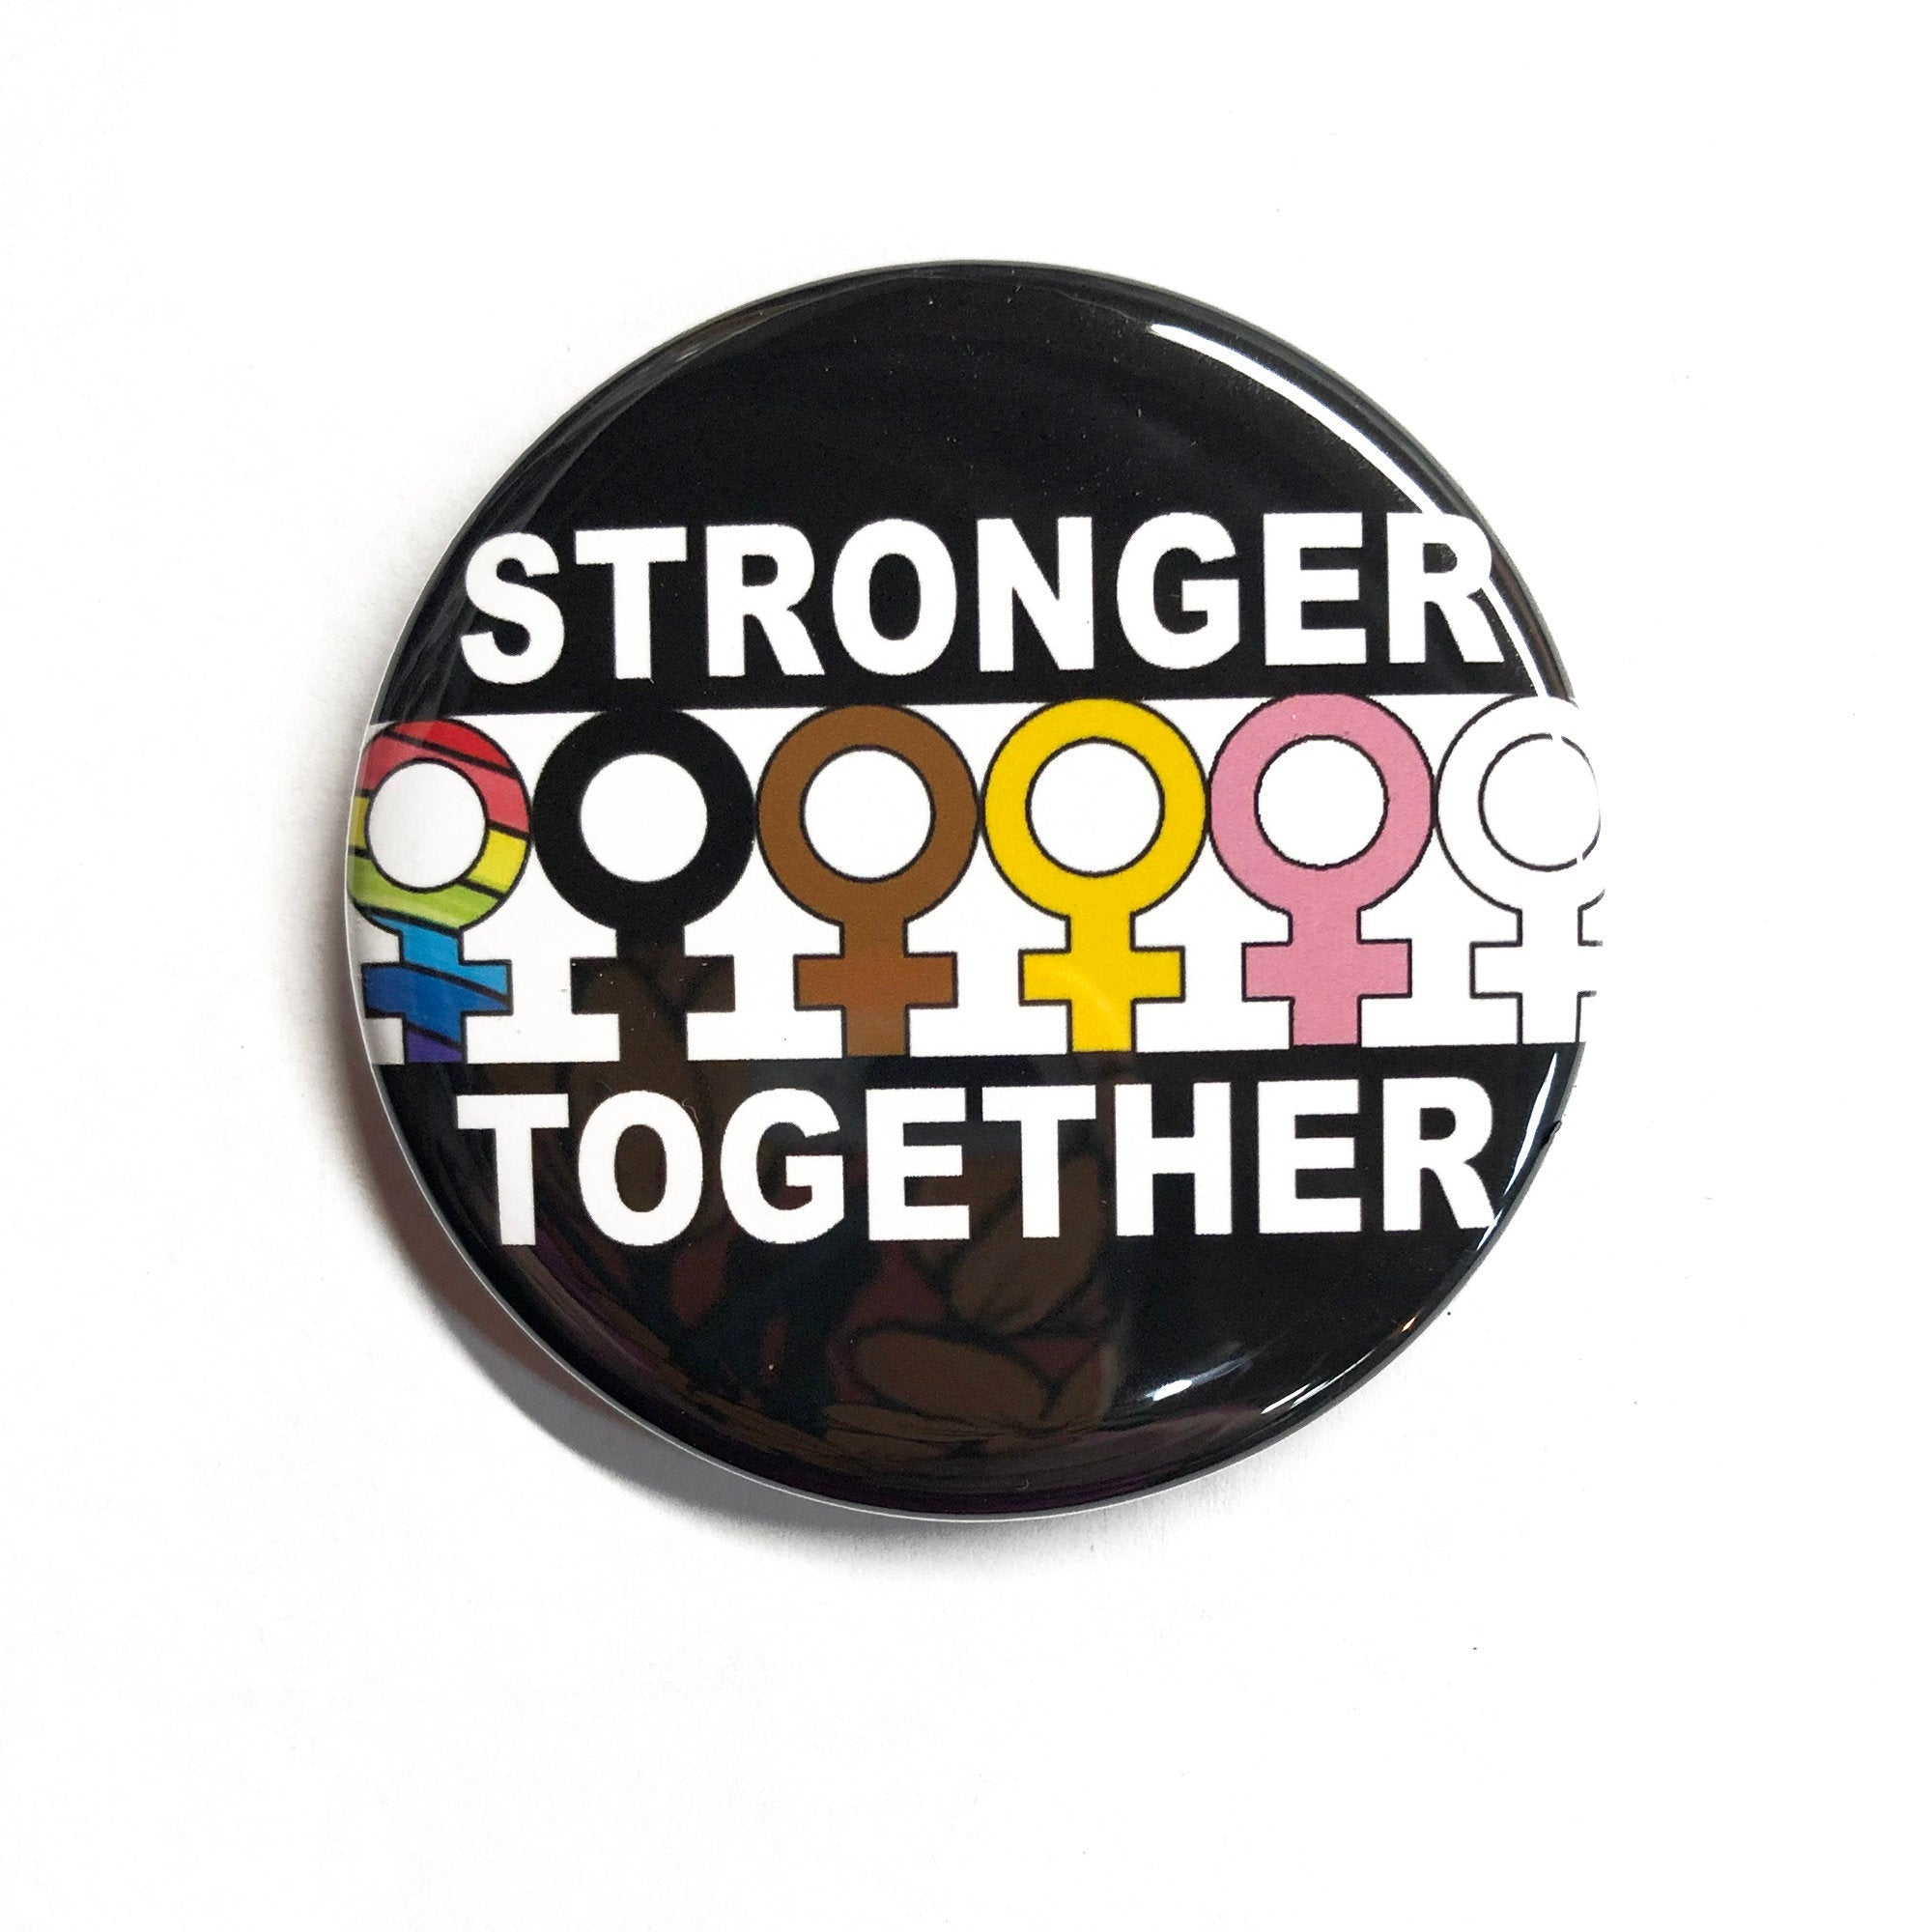 Stronger Together Pin or Magnet